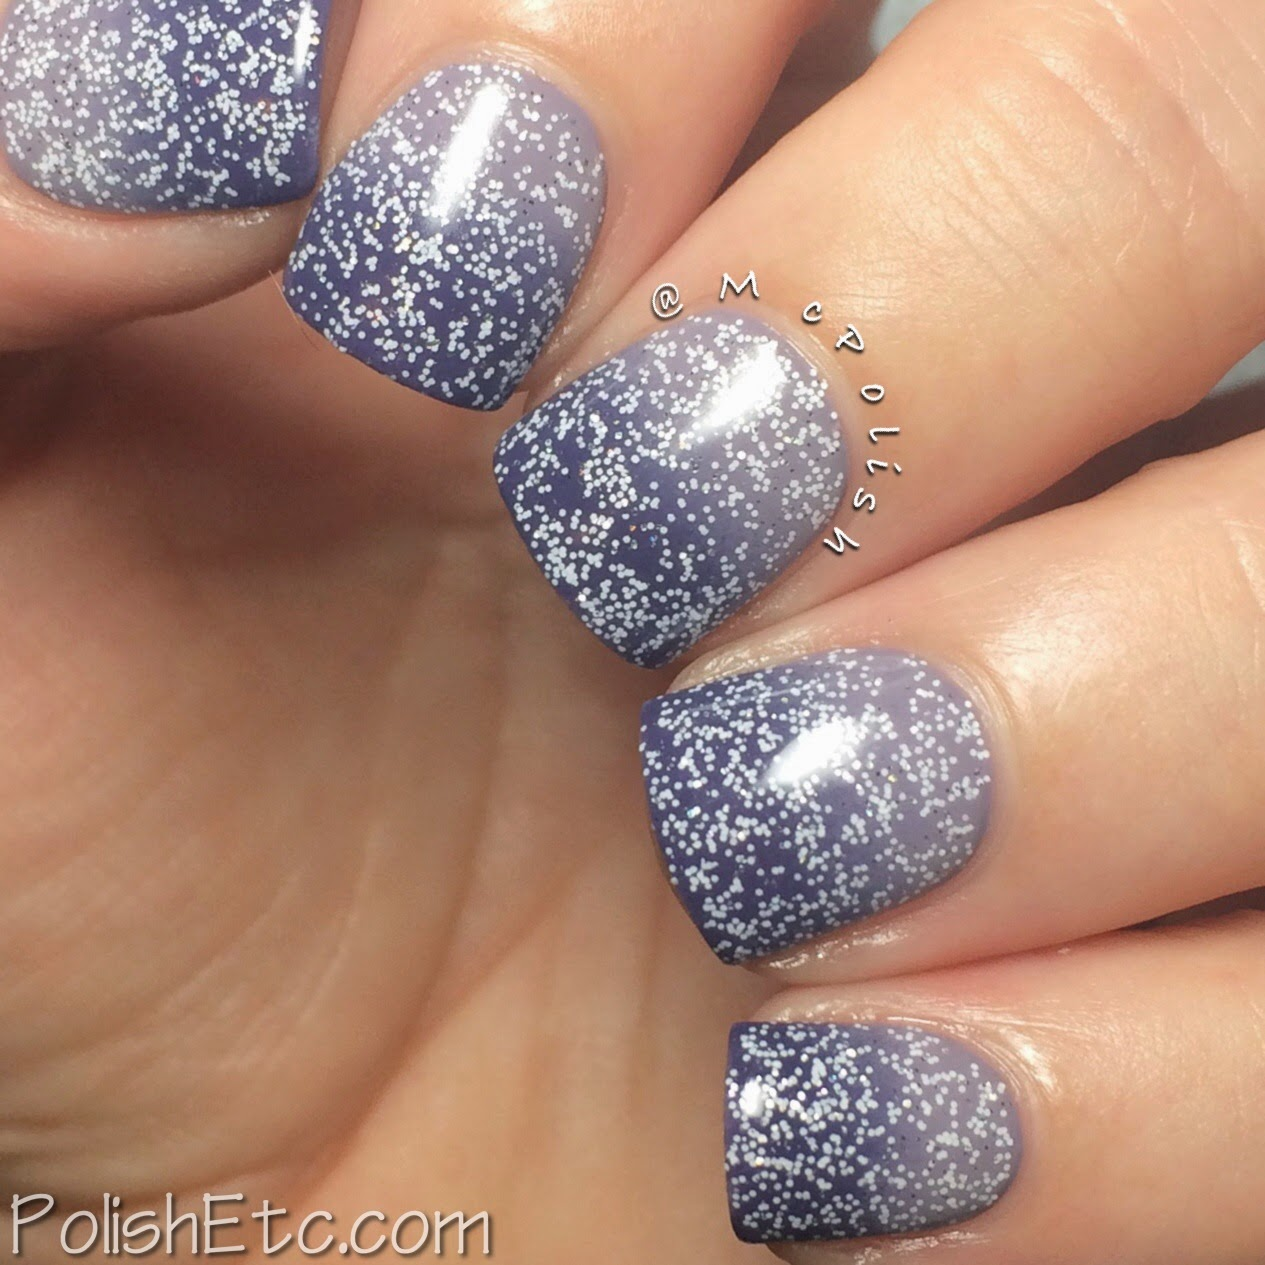 #31dc2014 - 31 Day Nail Art Challenge 2014 by McPolish - VIOLET